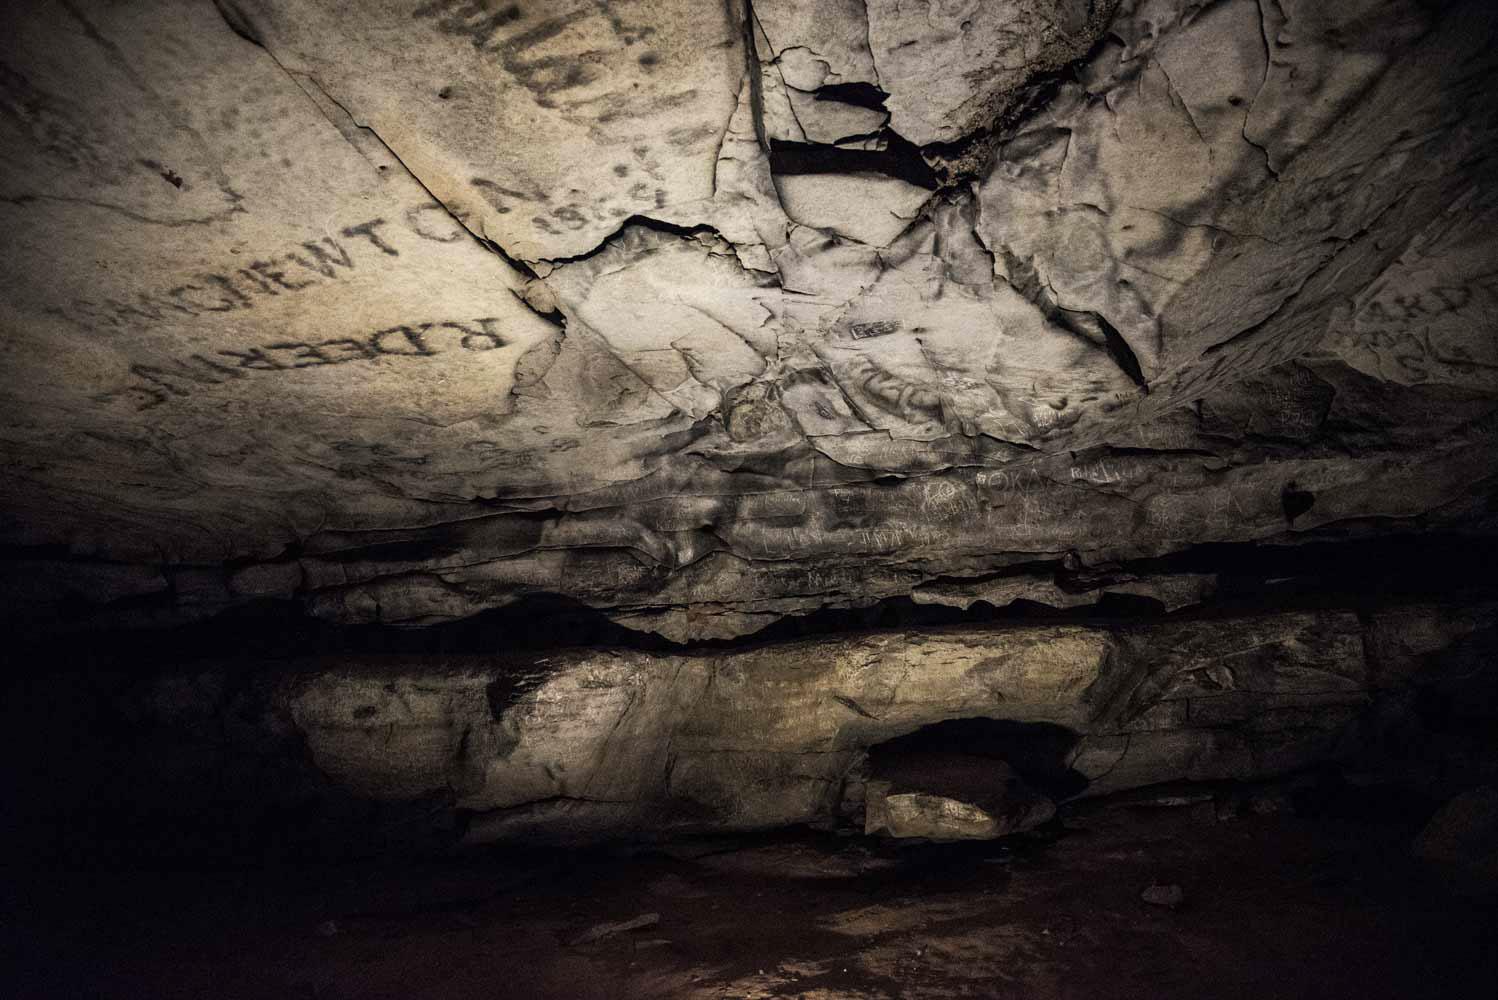 mammoth cave black singles Mammoth cave national park preserves the cave system and a part of the green river valley and hilly country of south central kentucky this is the world's longest known cave system, with more than 400 miles (643 km) explored.